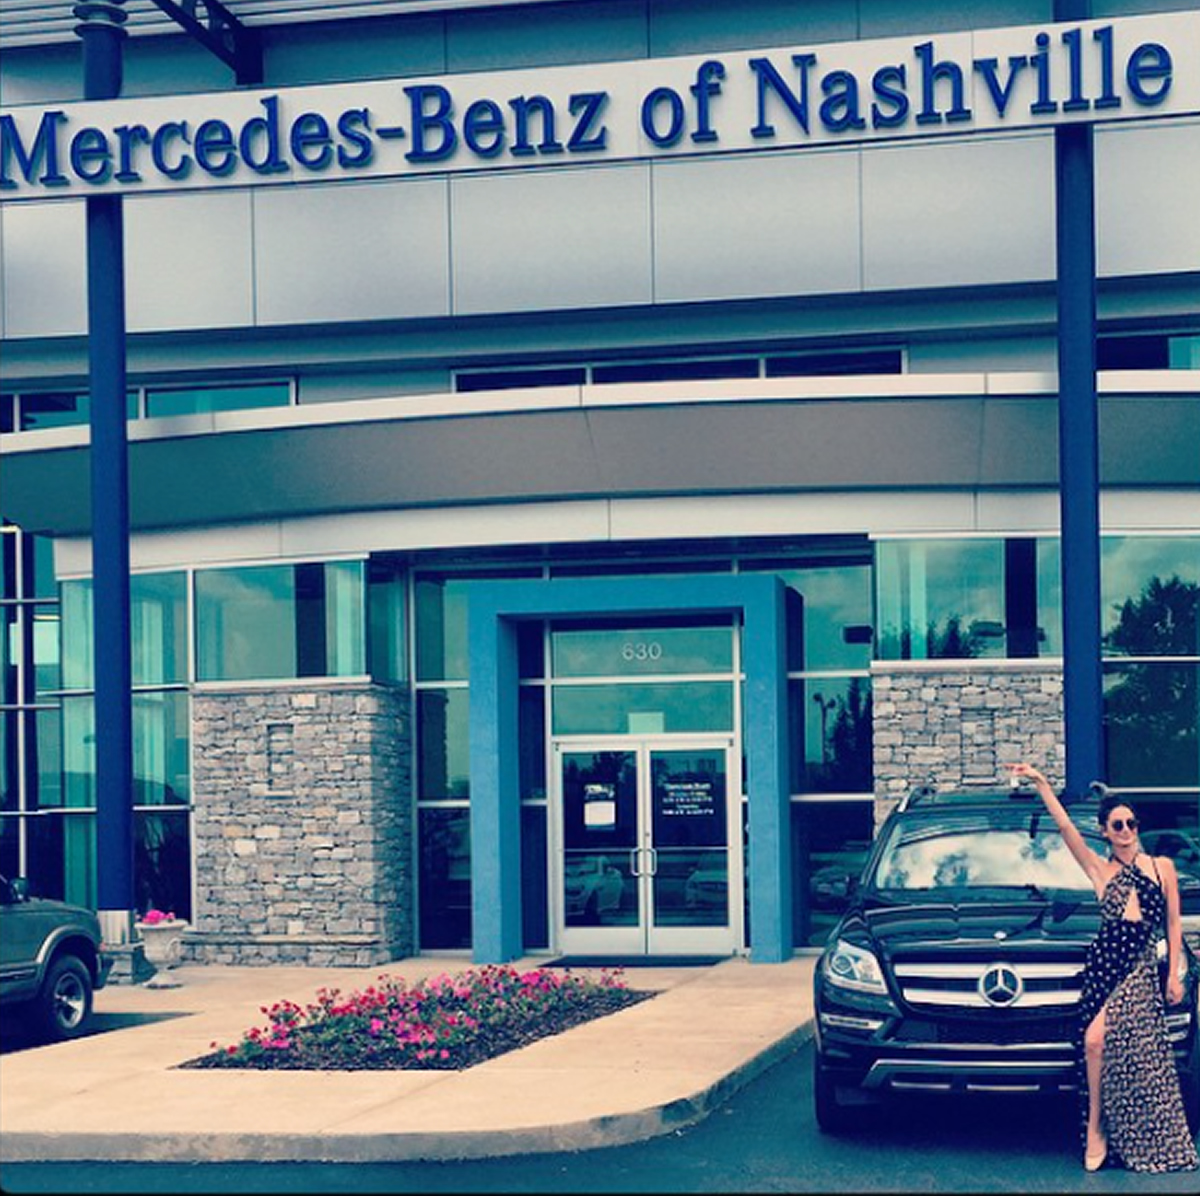 Amazing Mercedes Benz Of Nashville 20150617 Instagram User Lilyaldridge